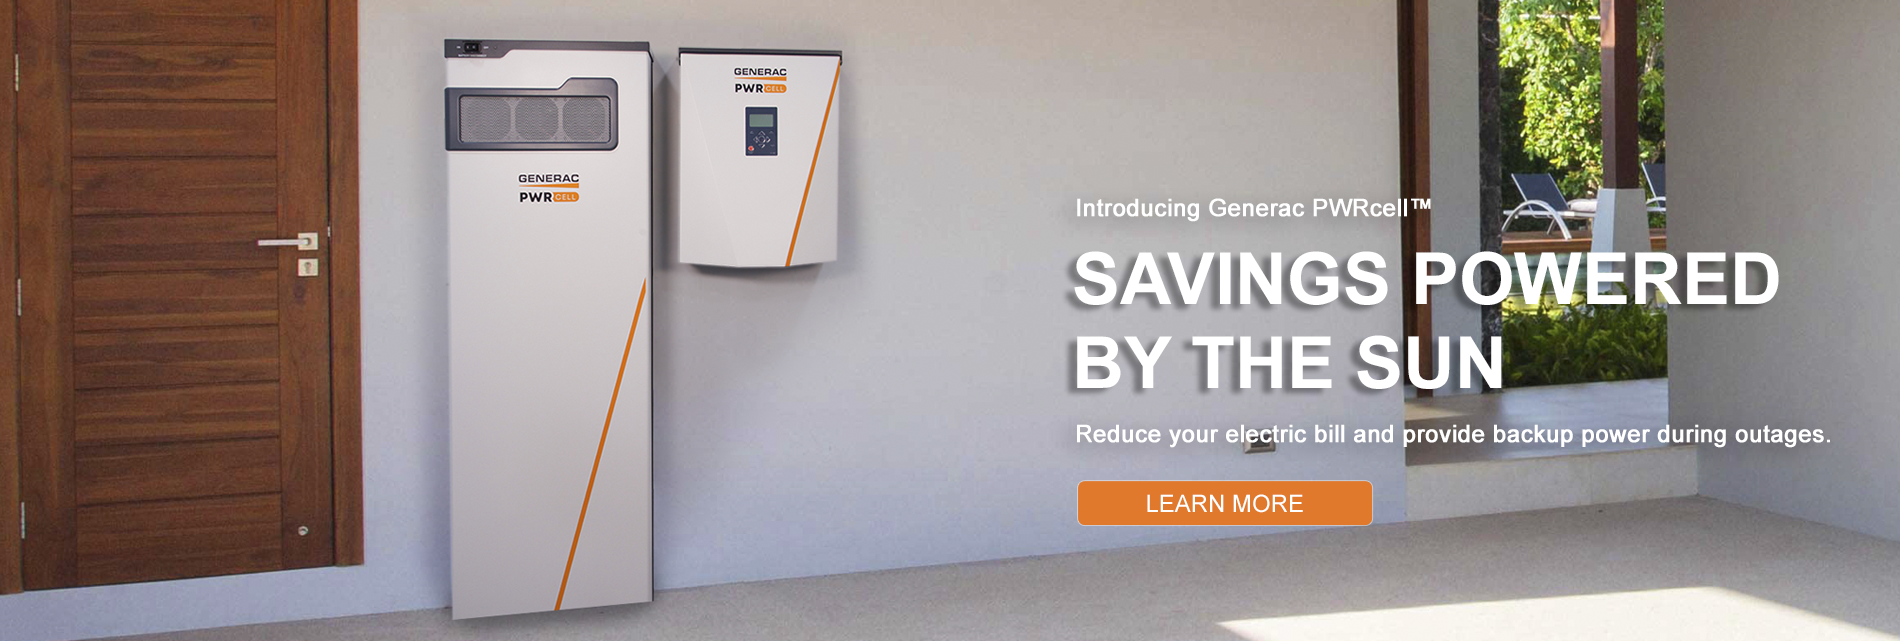 Generac PWRcell - Savings Powered by the Sun